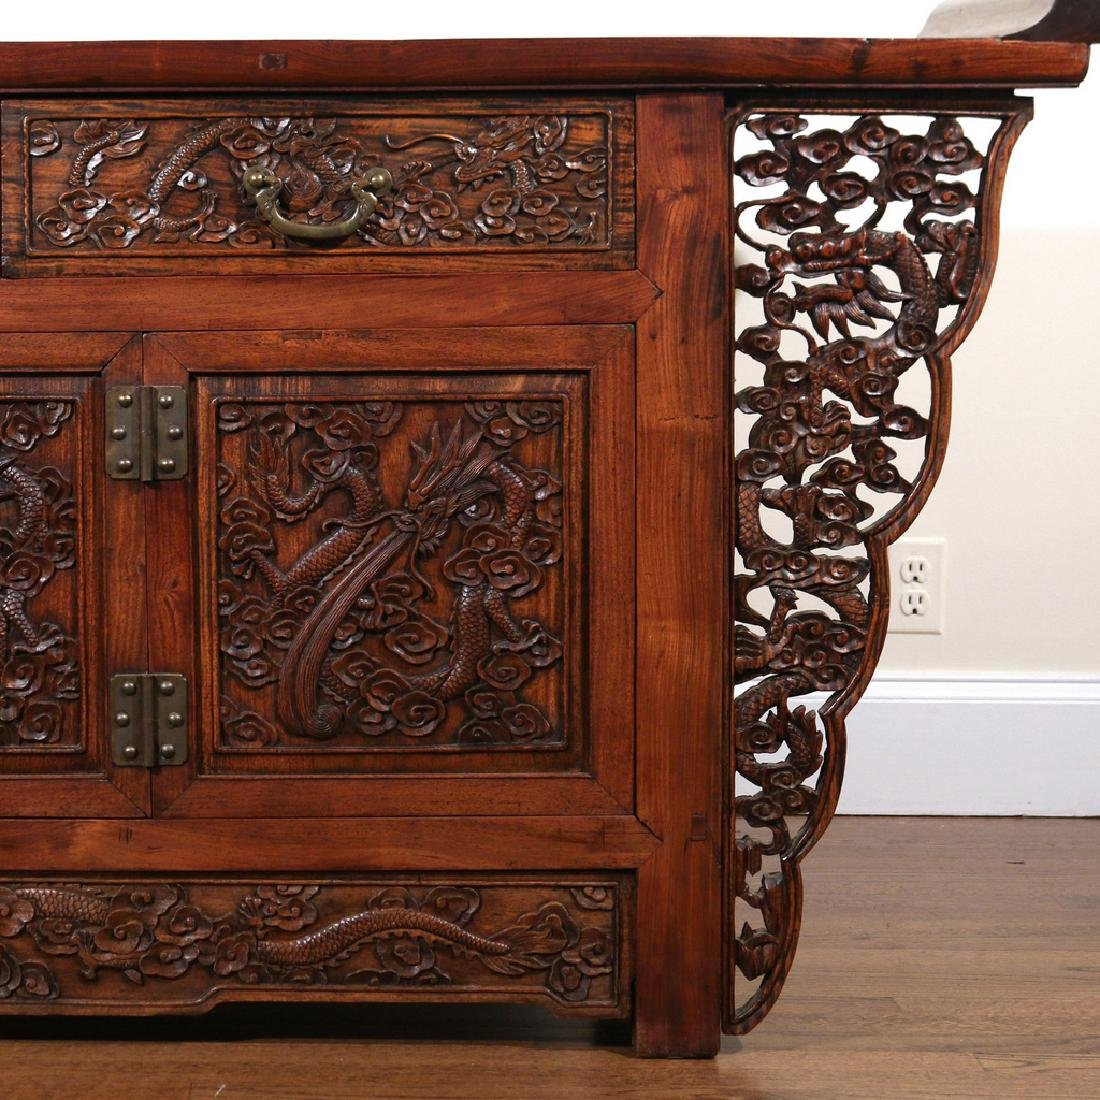 CHINESE HARDWOOD CARVED COFFER (LIANSANCHU) - 3